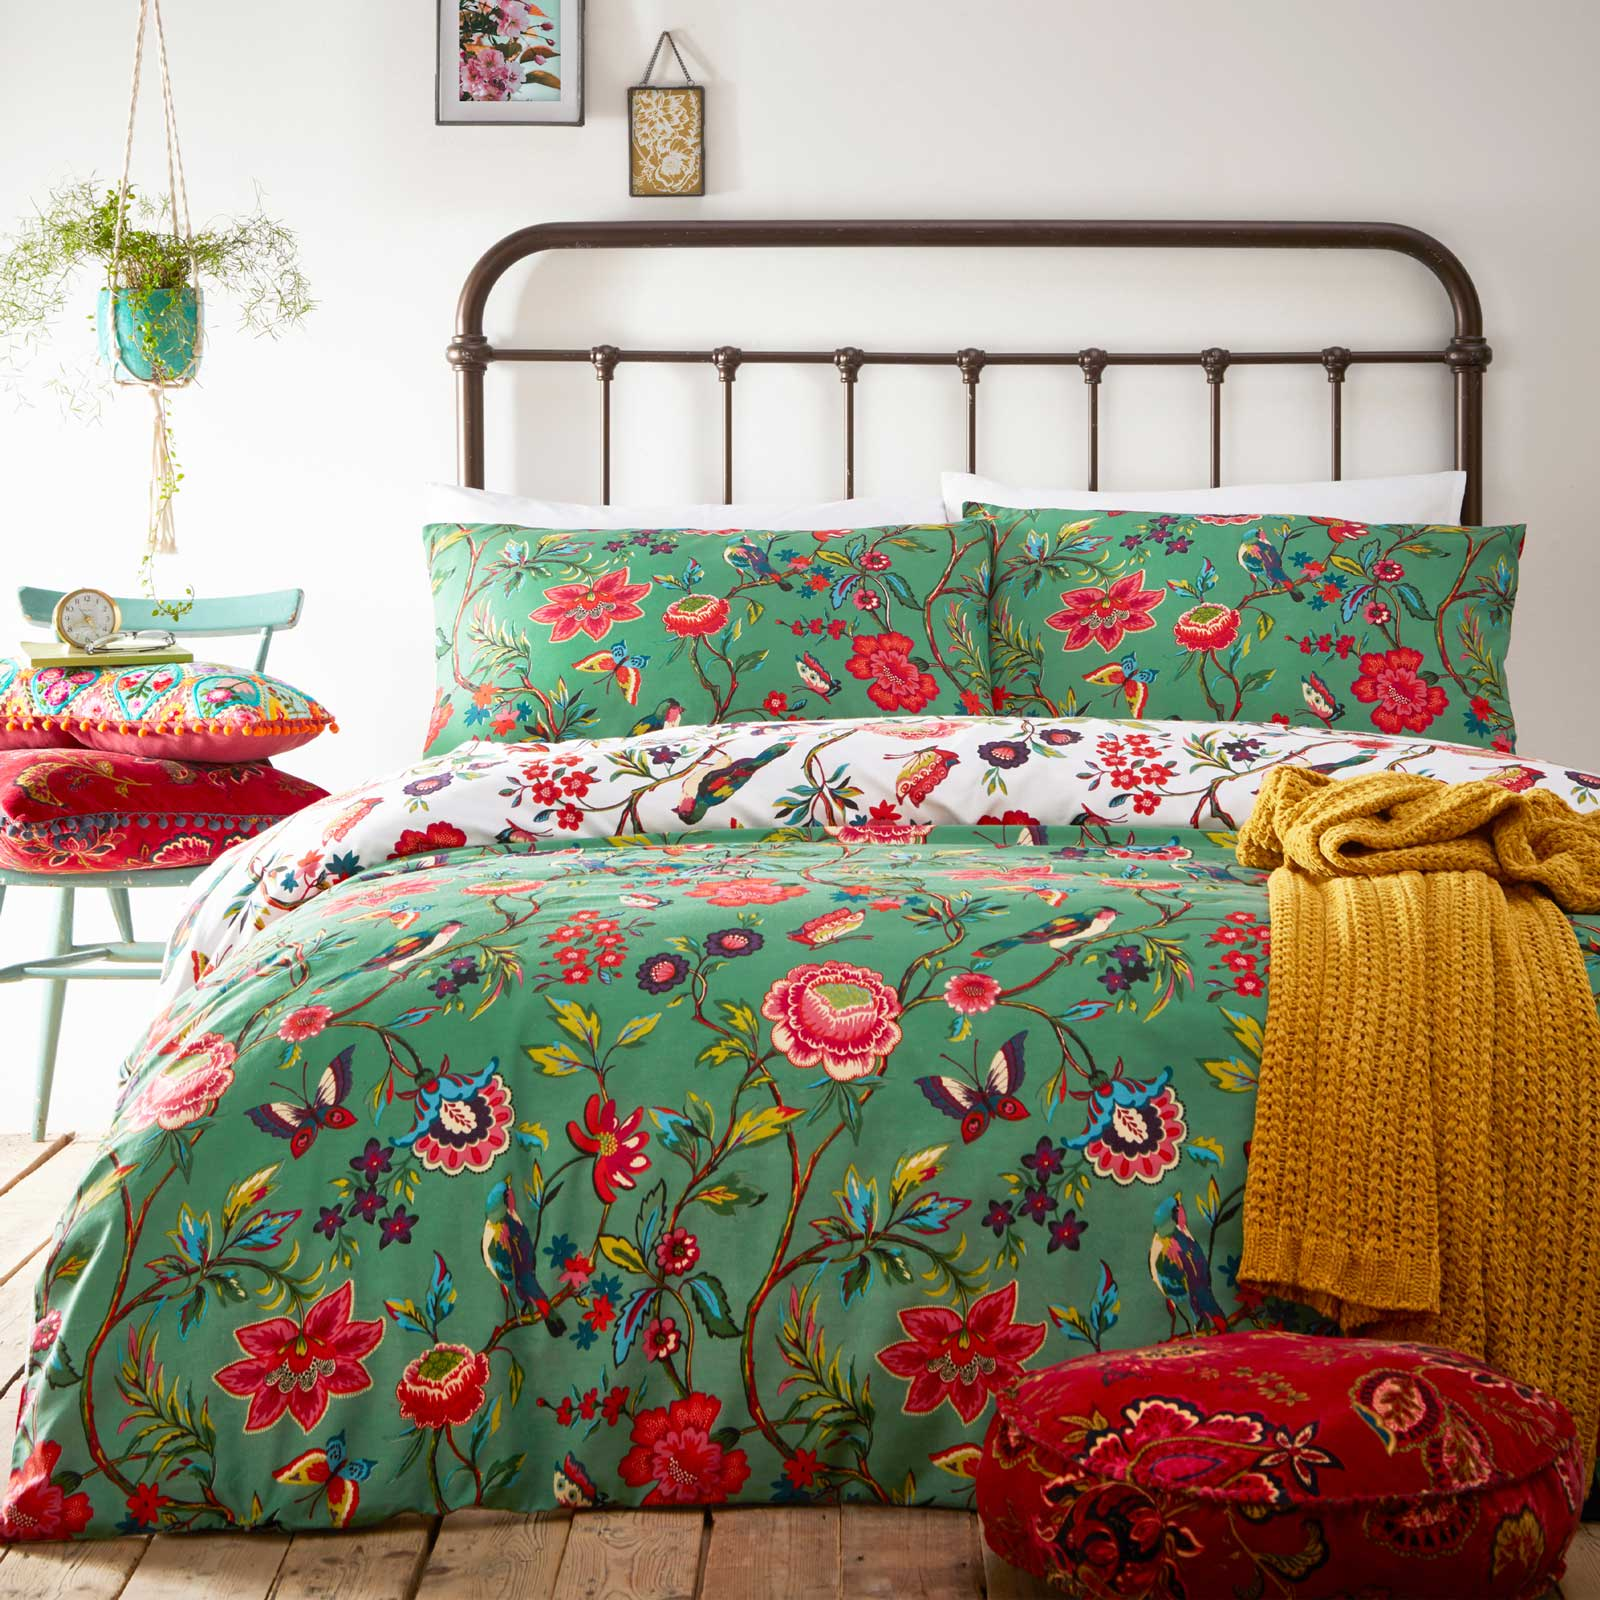 Pomelo Tropical Flowers Reversible Verdi Green Duvet Cover Set - Single - Ideal Textiles